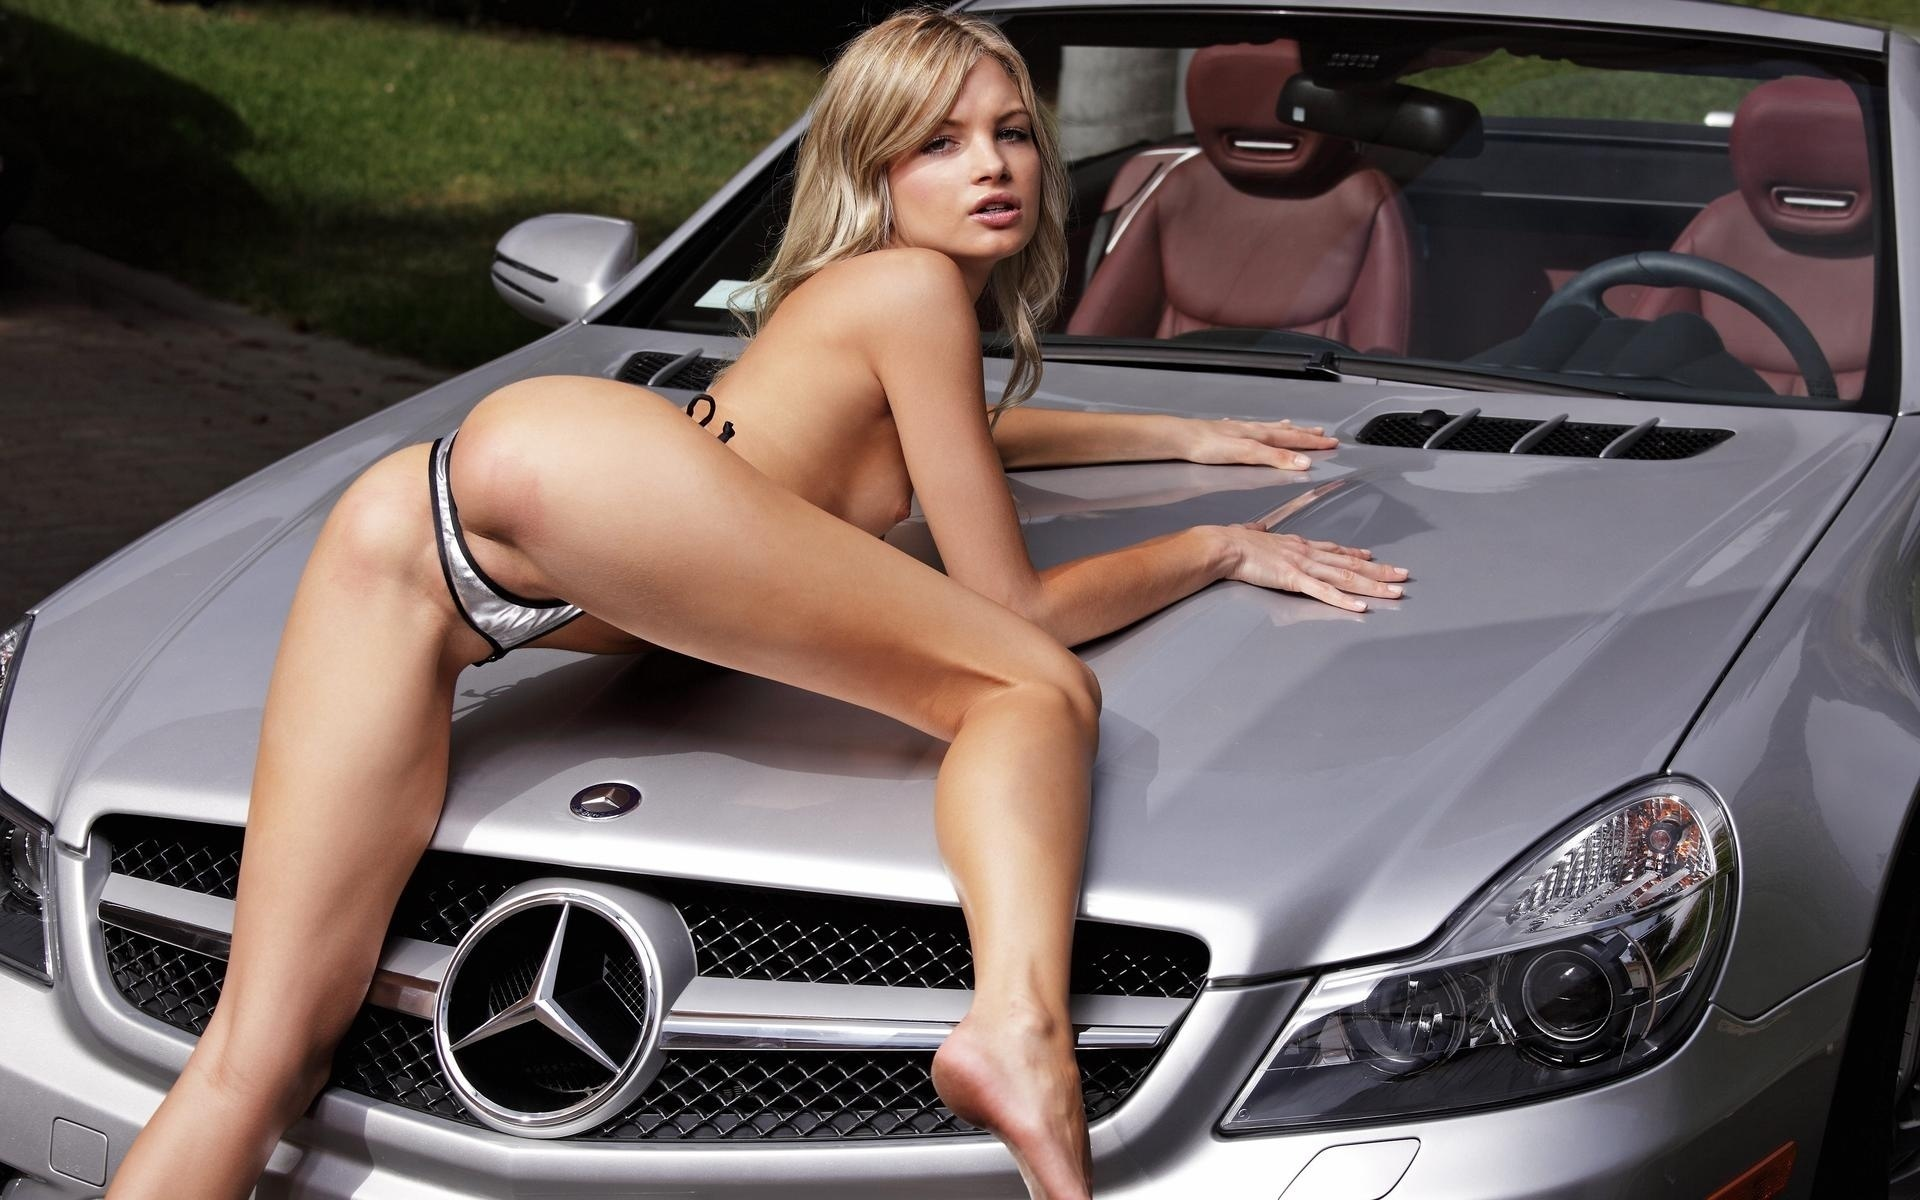 hot women nude in car